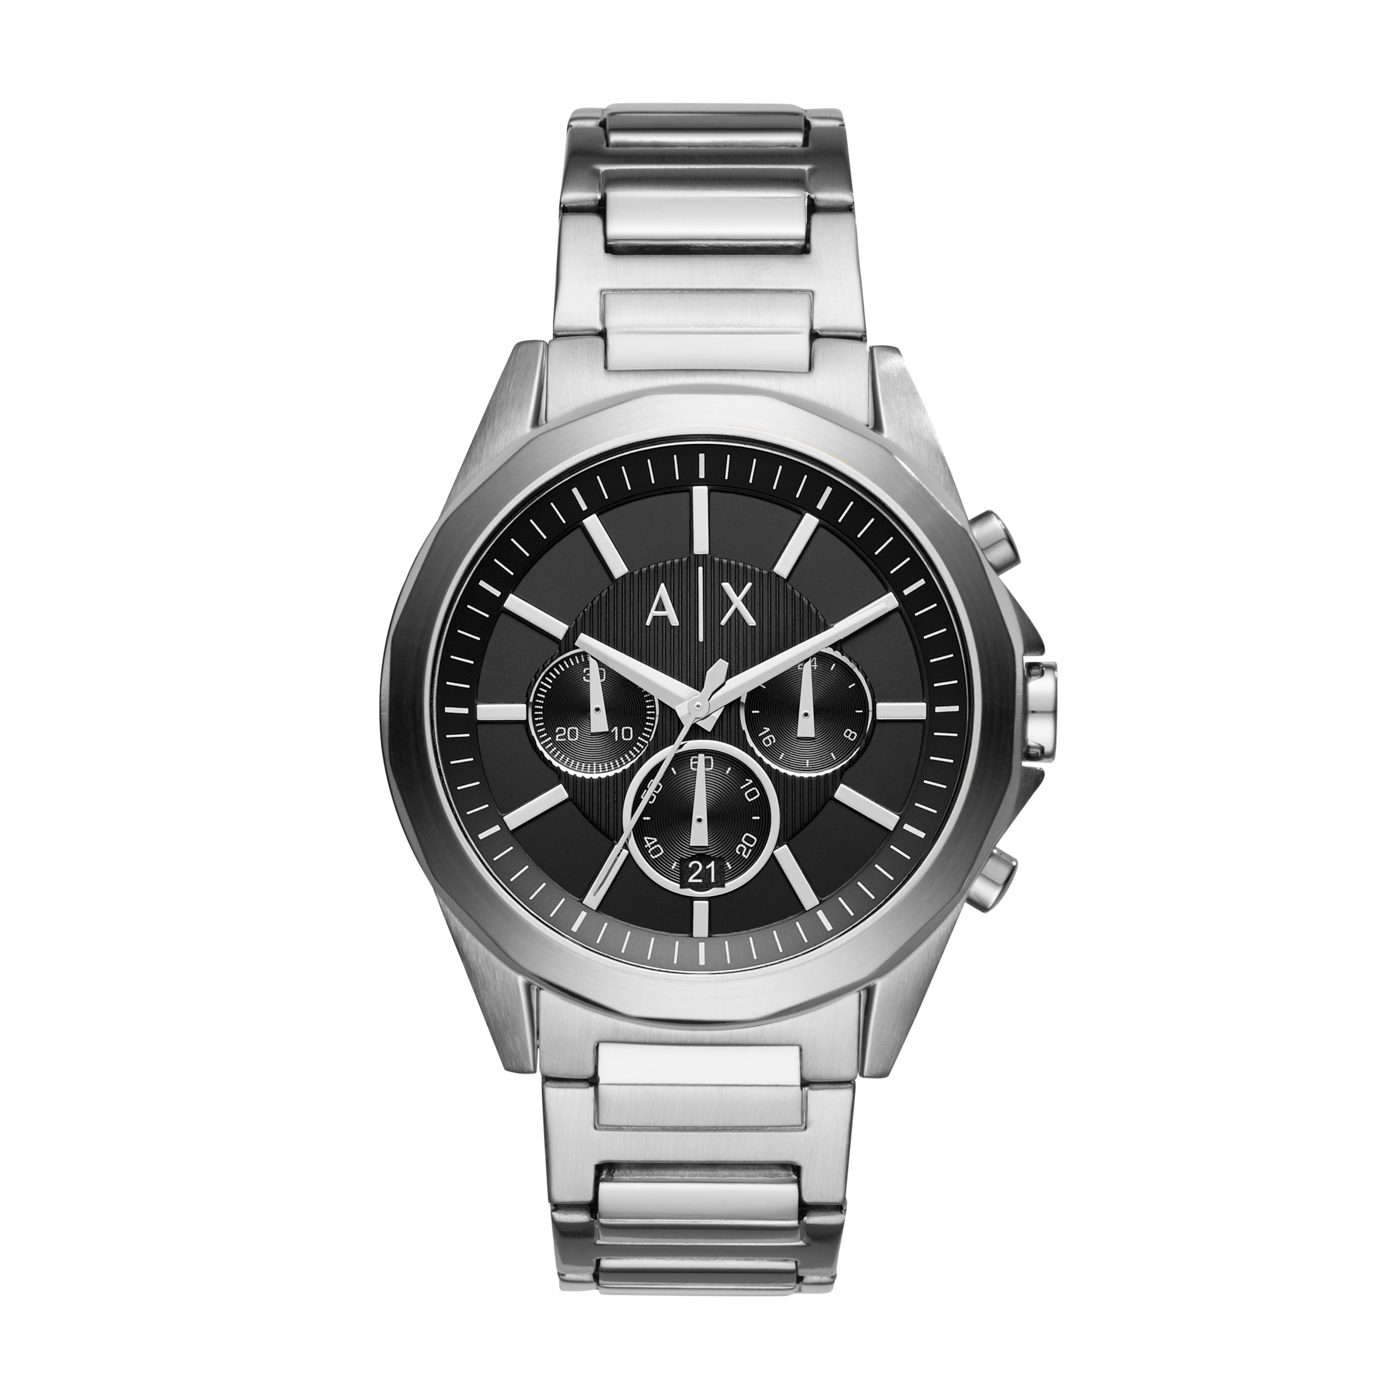 Immagine di Armani Exchange Drexler watch AX2600